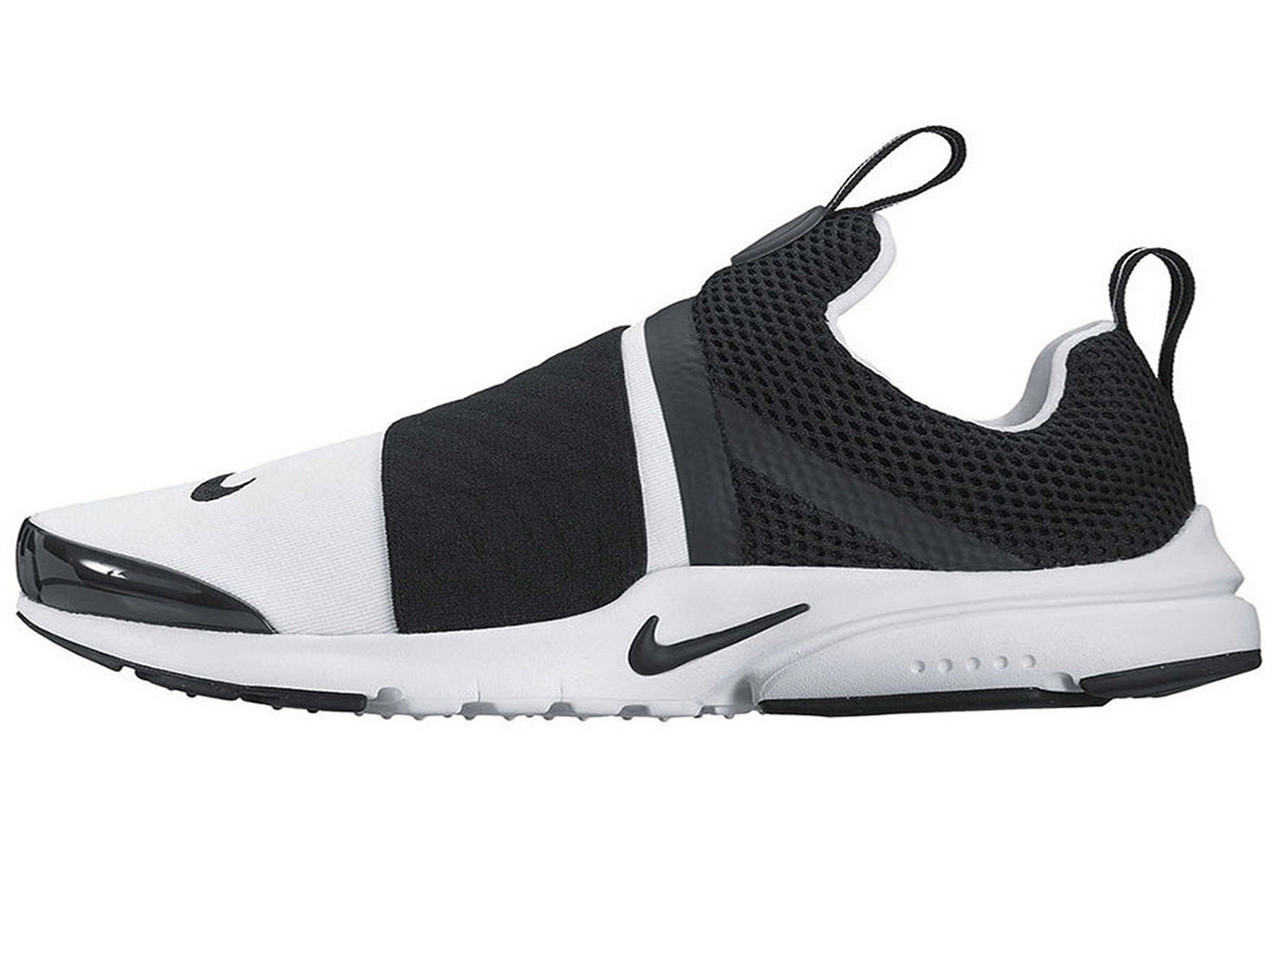 brand new be0a7 3c7b9 Мужские кроссовки Nike Air Presto Extreme Black White (Реплика ААА+) -  Интернет